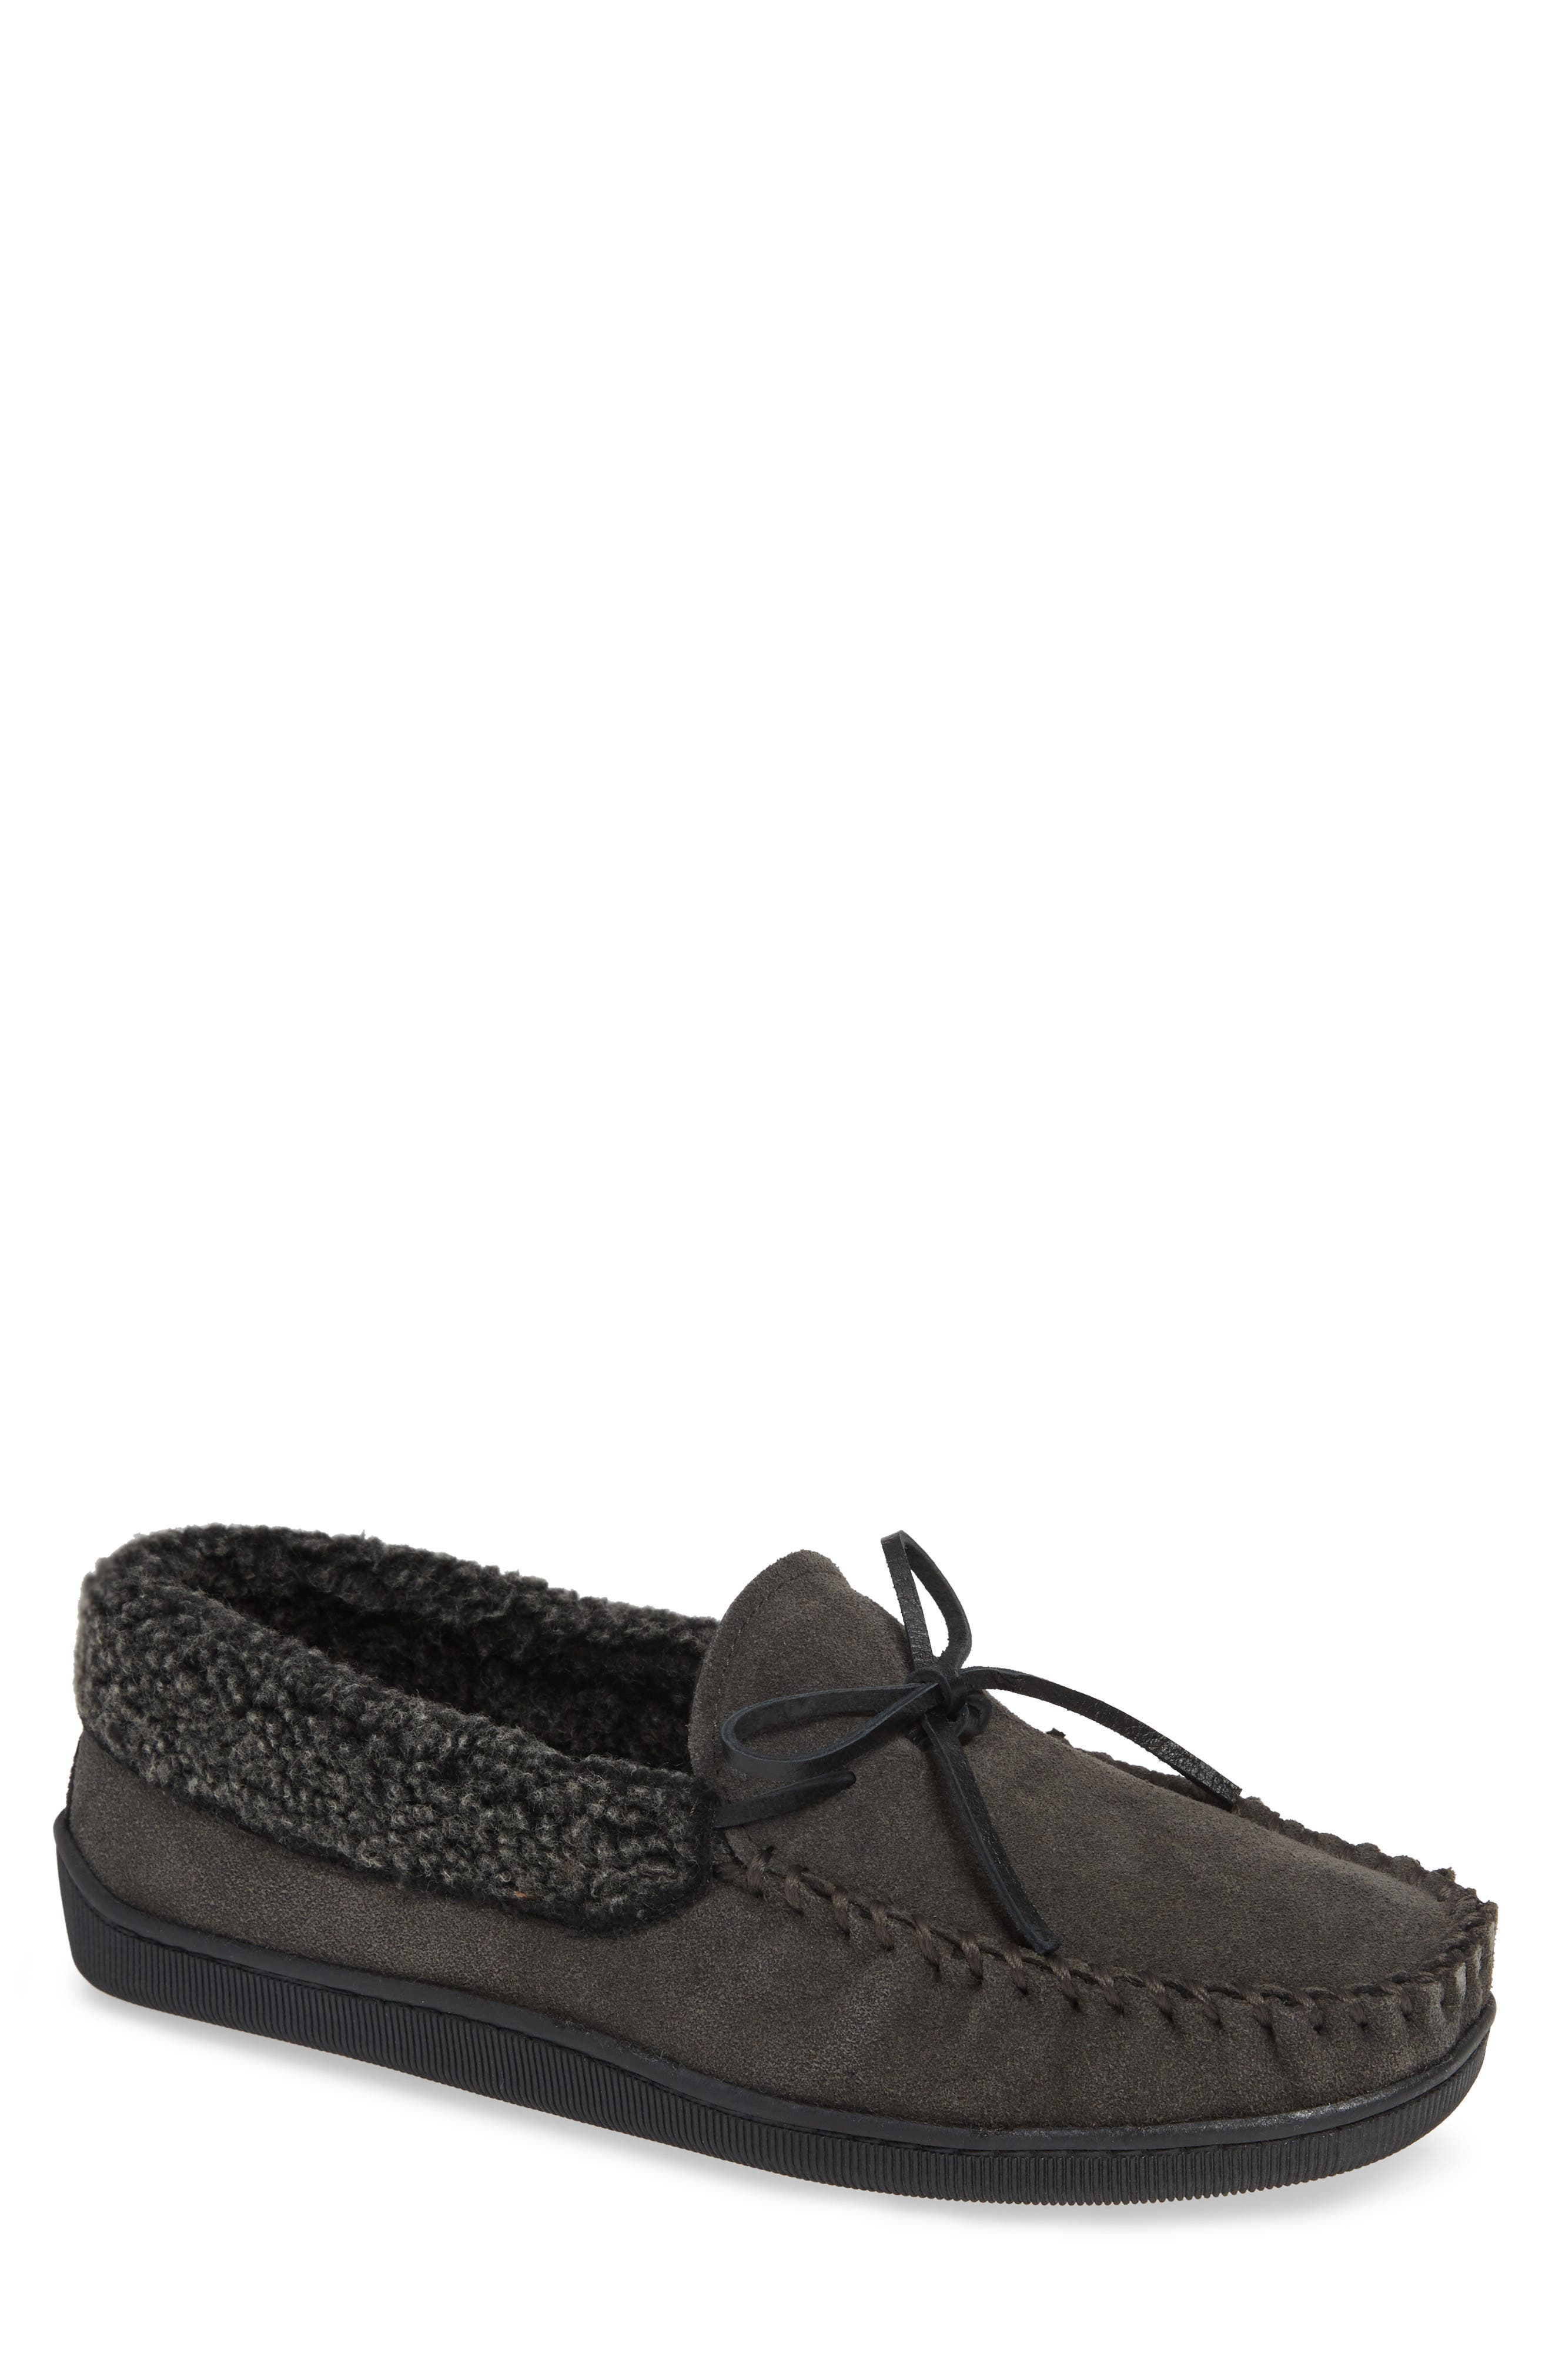 Allen Moccasin Slipper,                         Main,                         color, CHARCOAL SUEDE